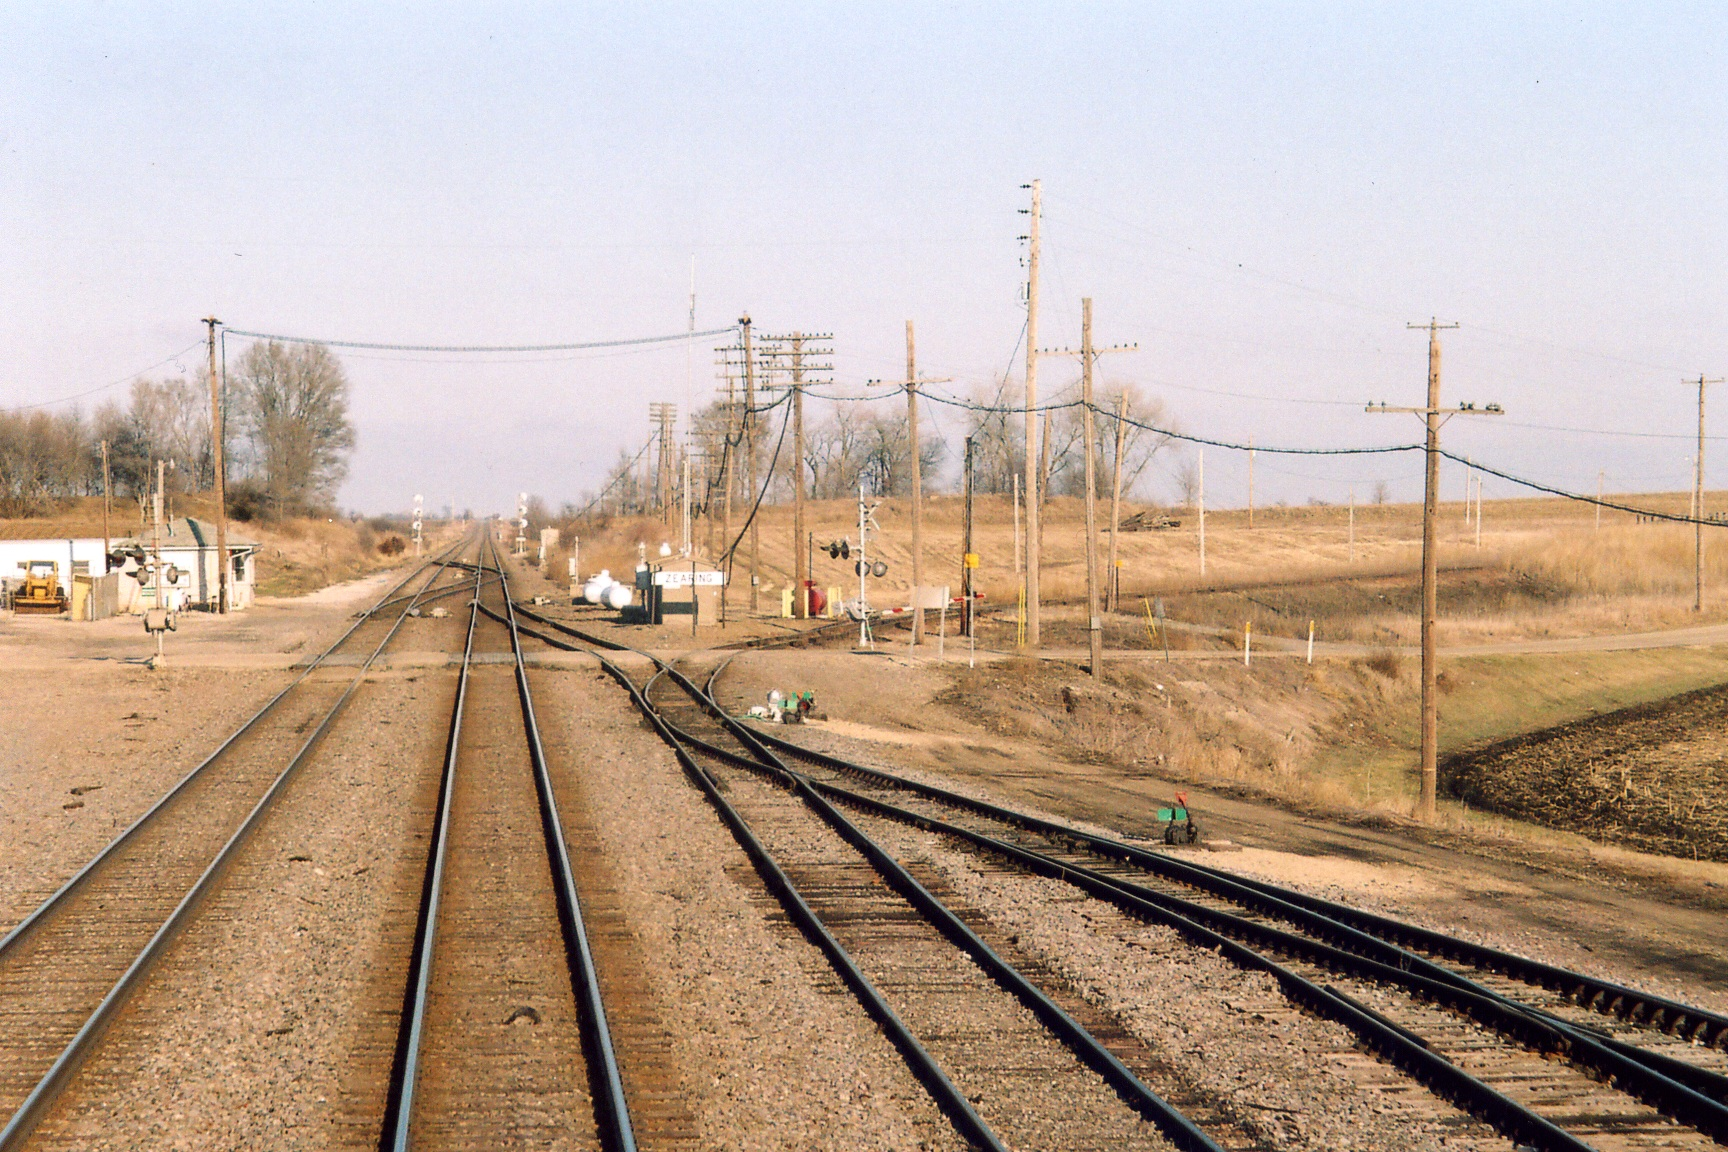 East end of Zearing yard, from Amtrak #5, Feb. 5, 2006.